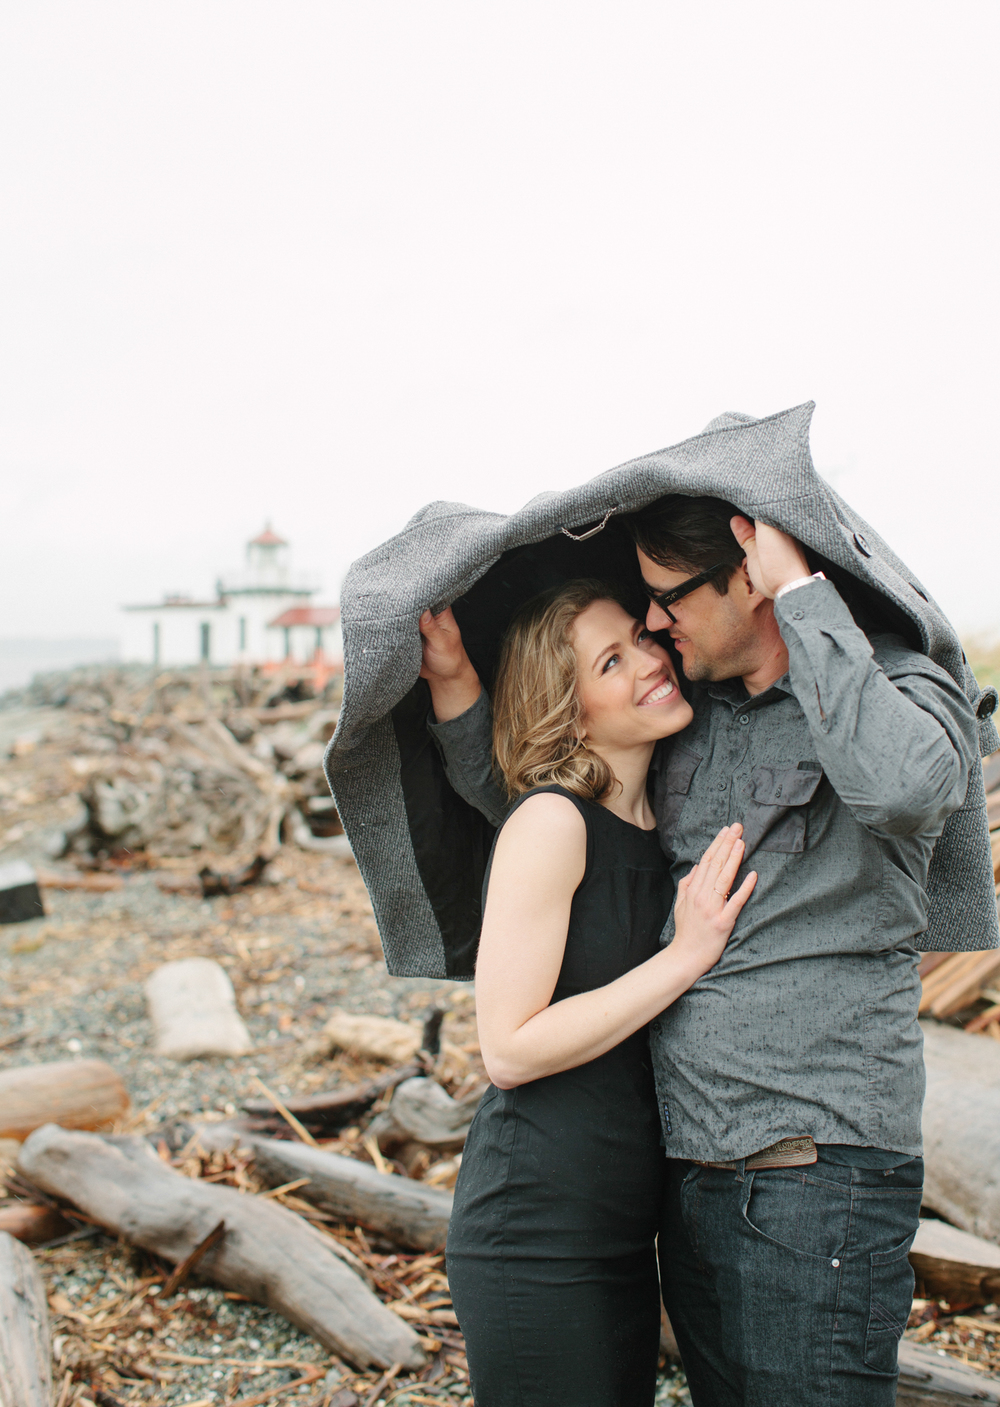 Rainy Seattle Engagement Photos-4a.jpg